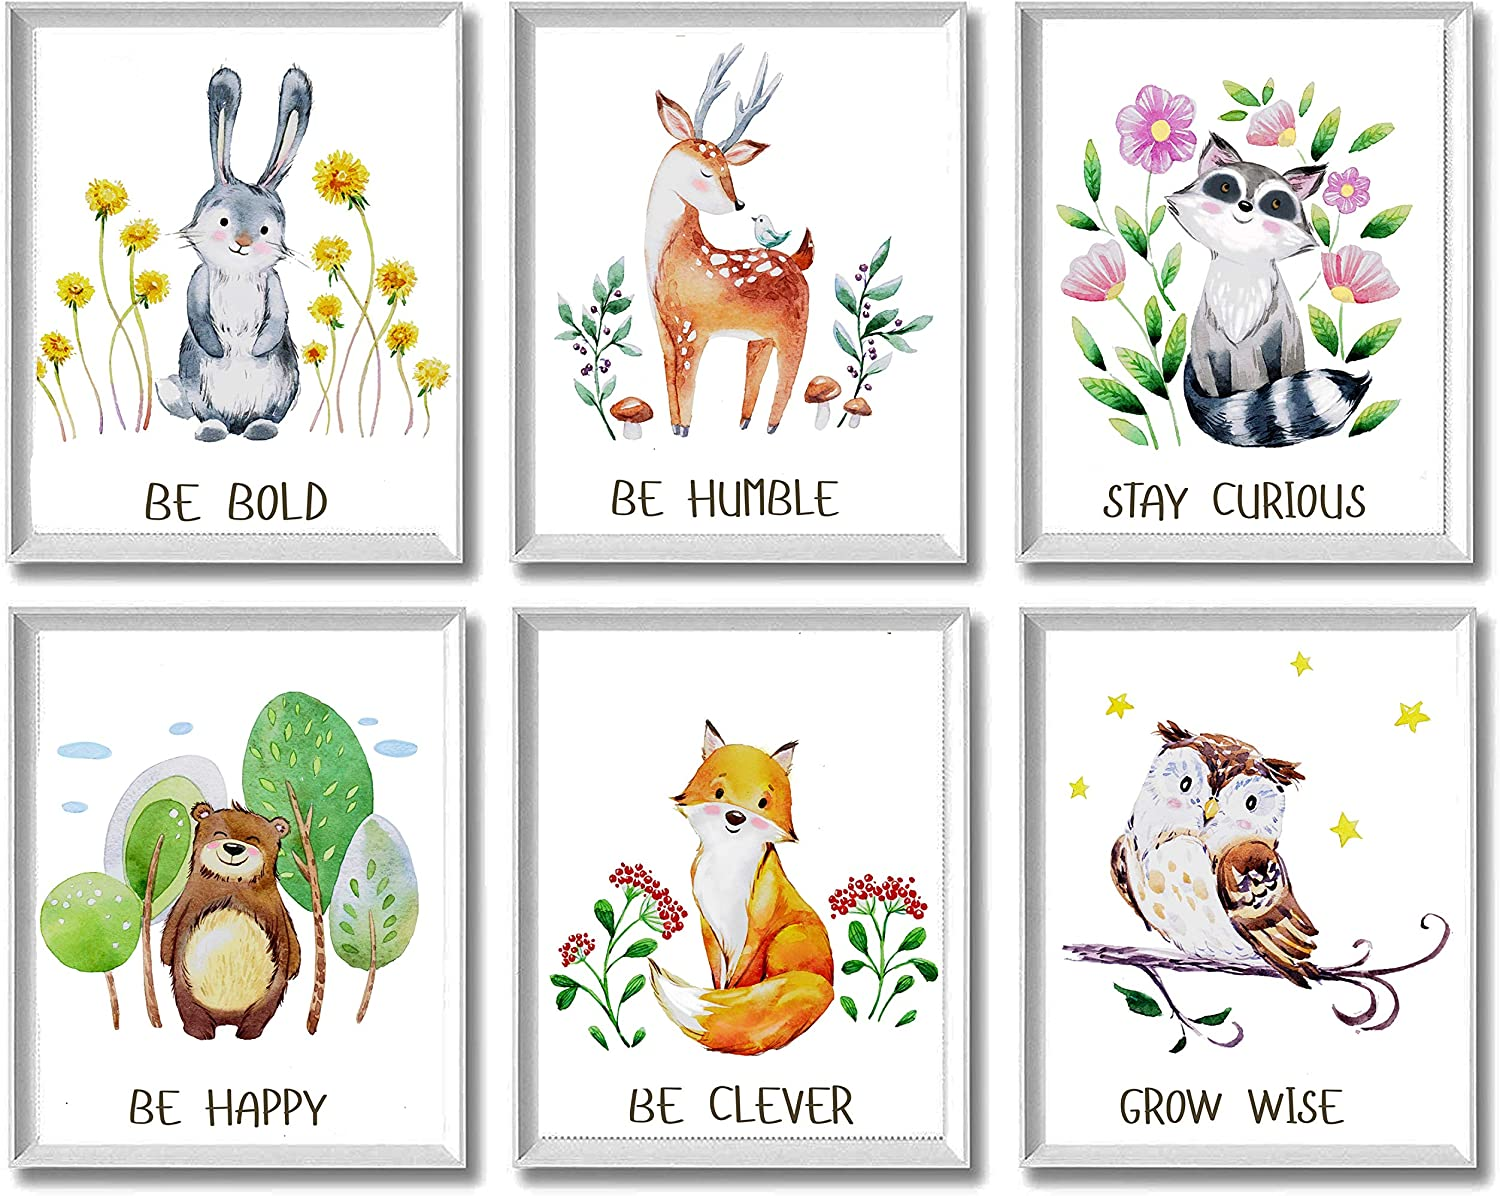 Woodland Animals Nursery Decor Unframed Wall Art -Set of 6 Prints 8x10- Bunny Rabbit, Forest Deer, Brown Bear, Owl, Raccoon, Fox Forest Creatures for Baby Toddler Boy Girl Playroom, Bedroom, Daycare